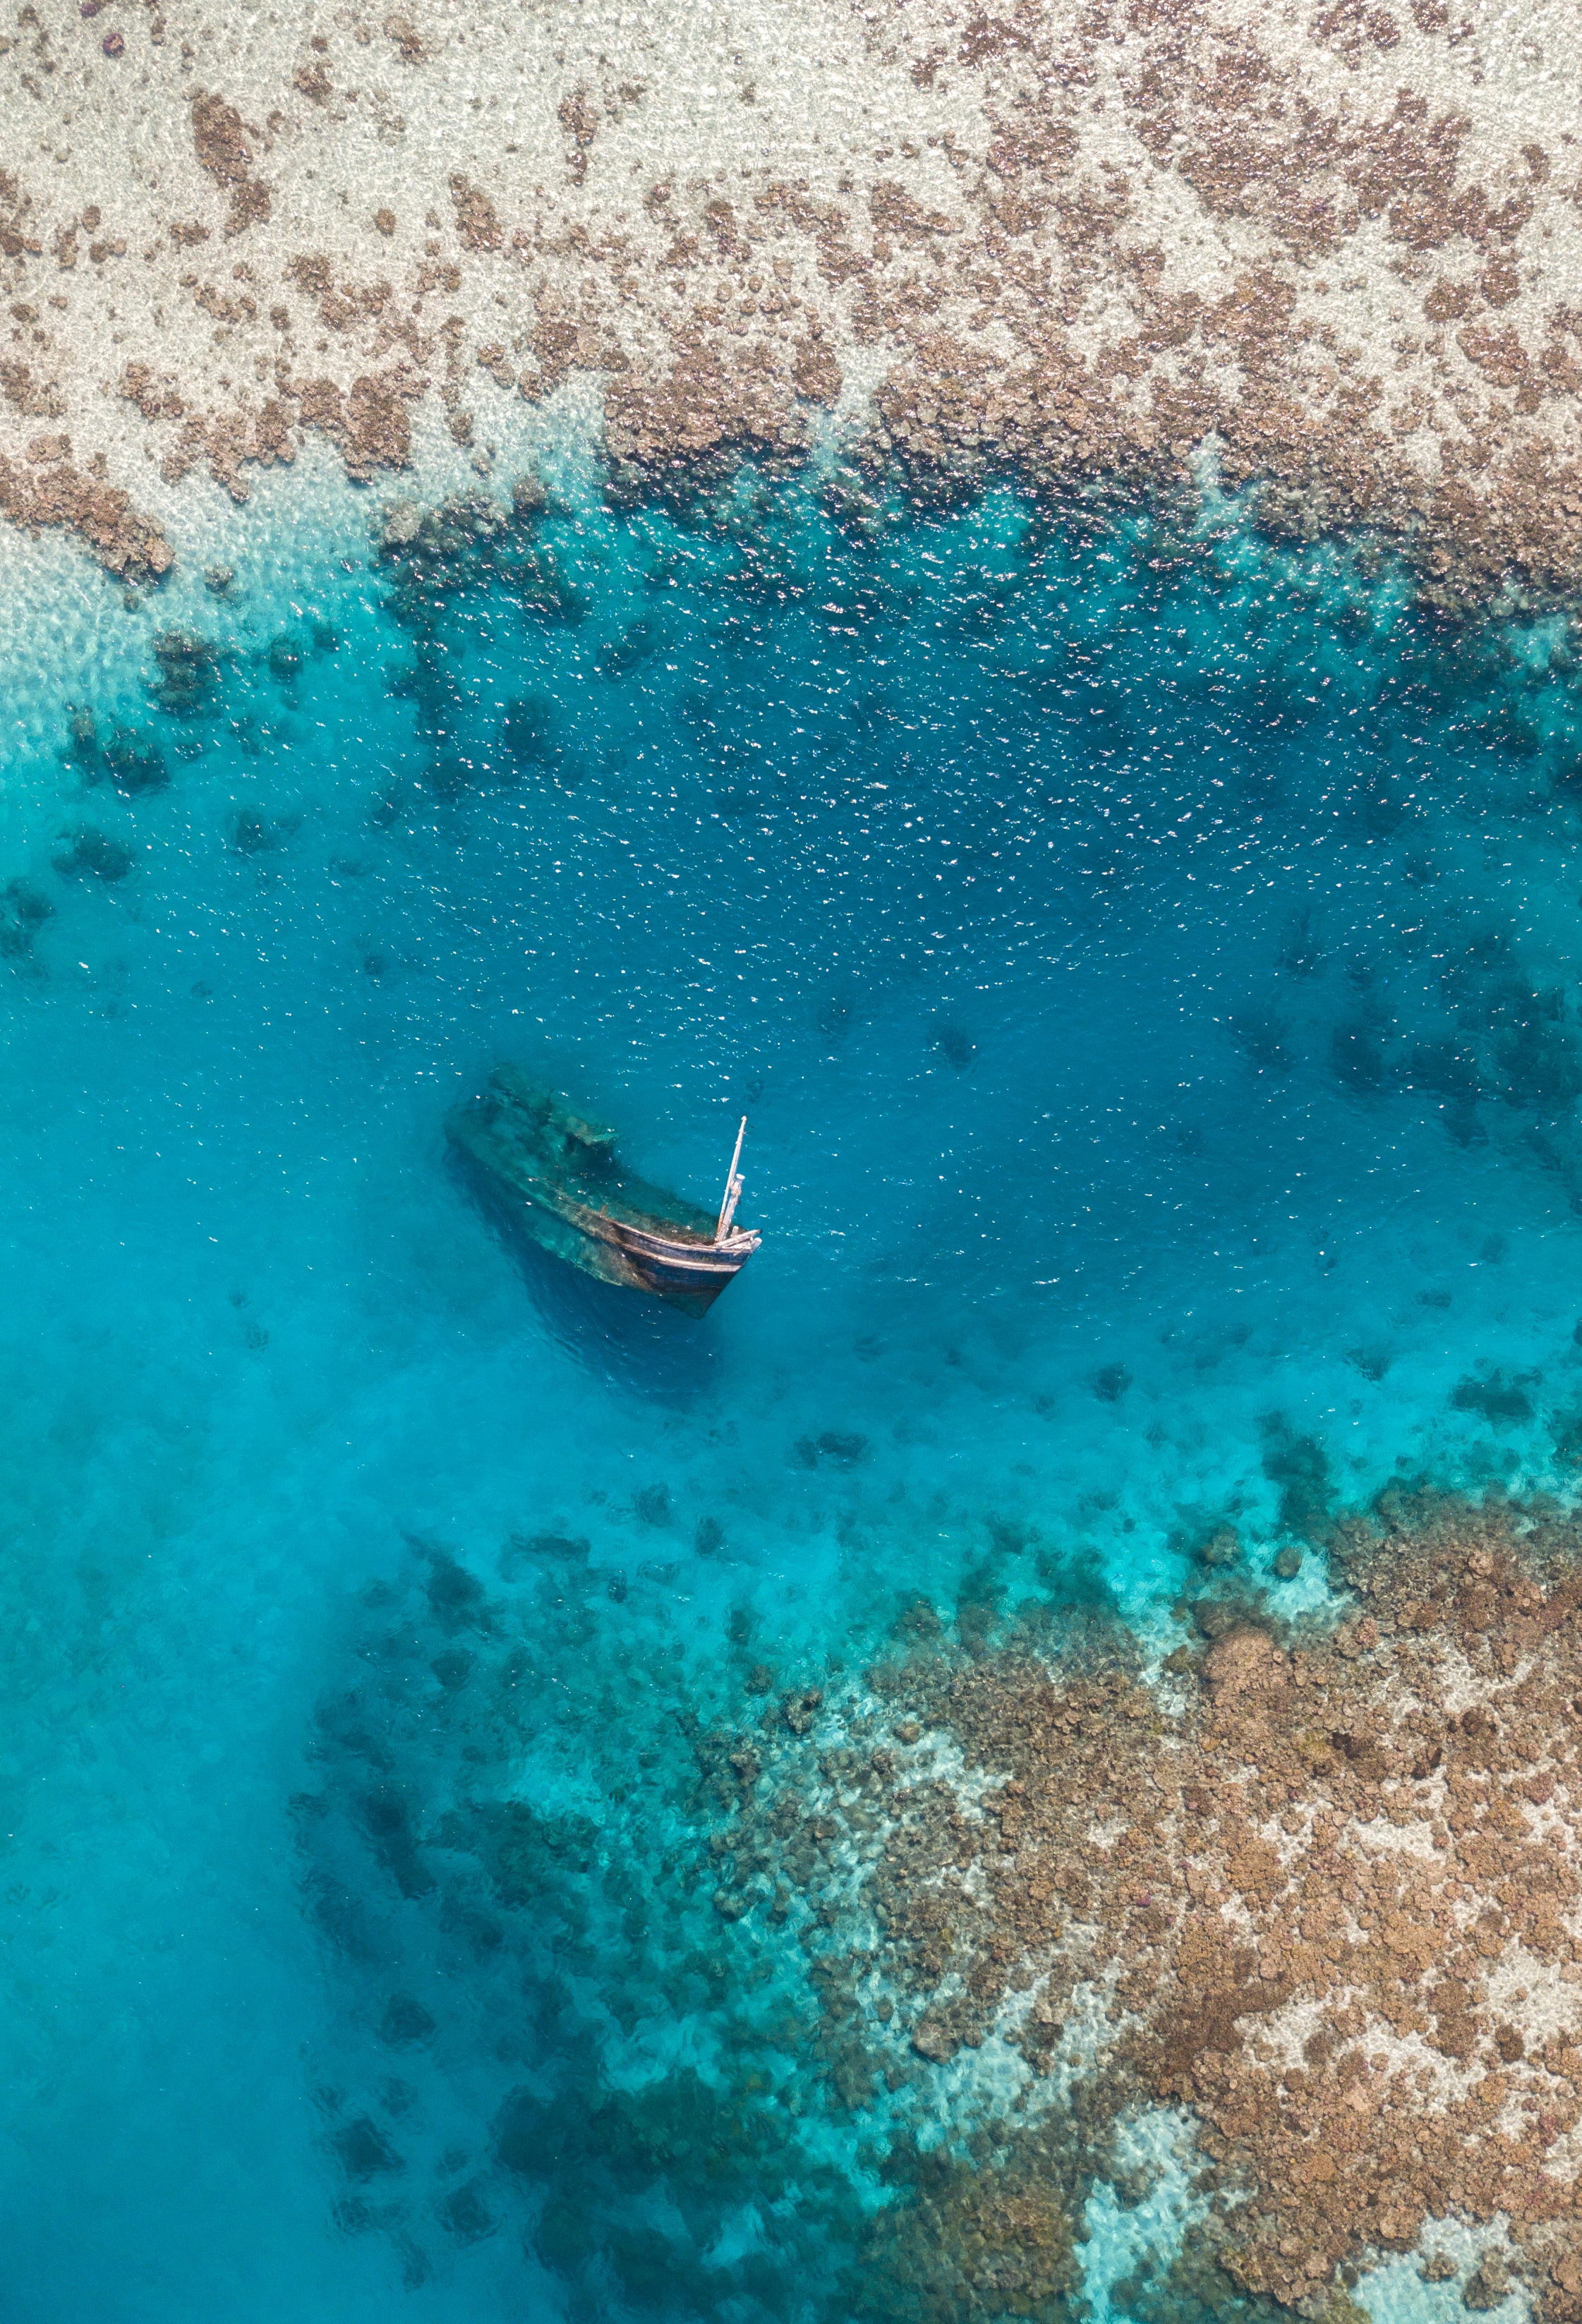 aerial photo of grey boat sink at the blue sea water